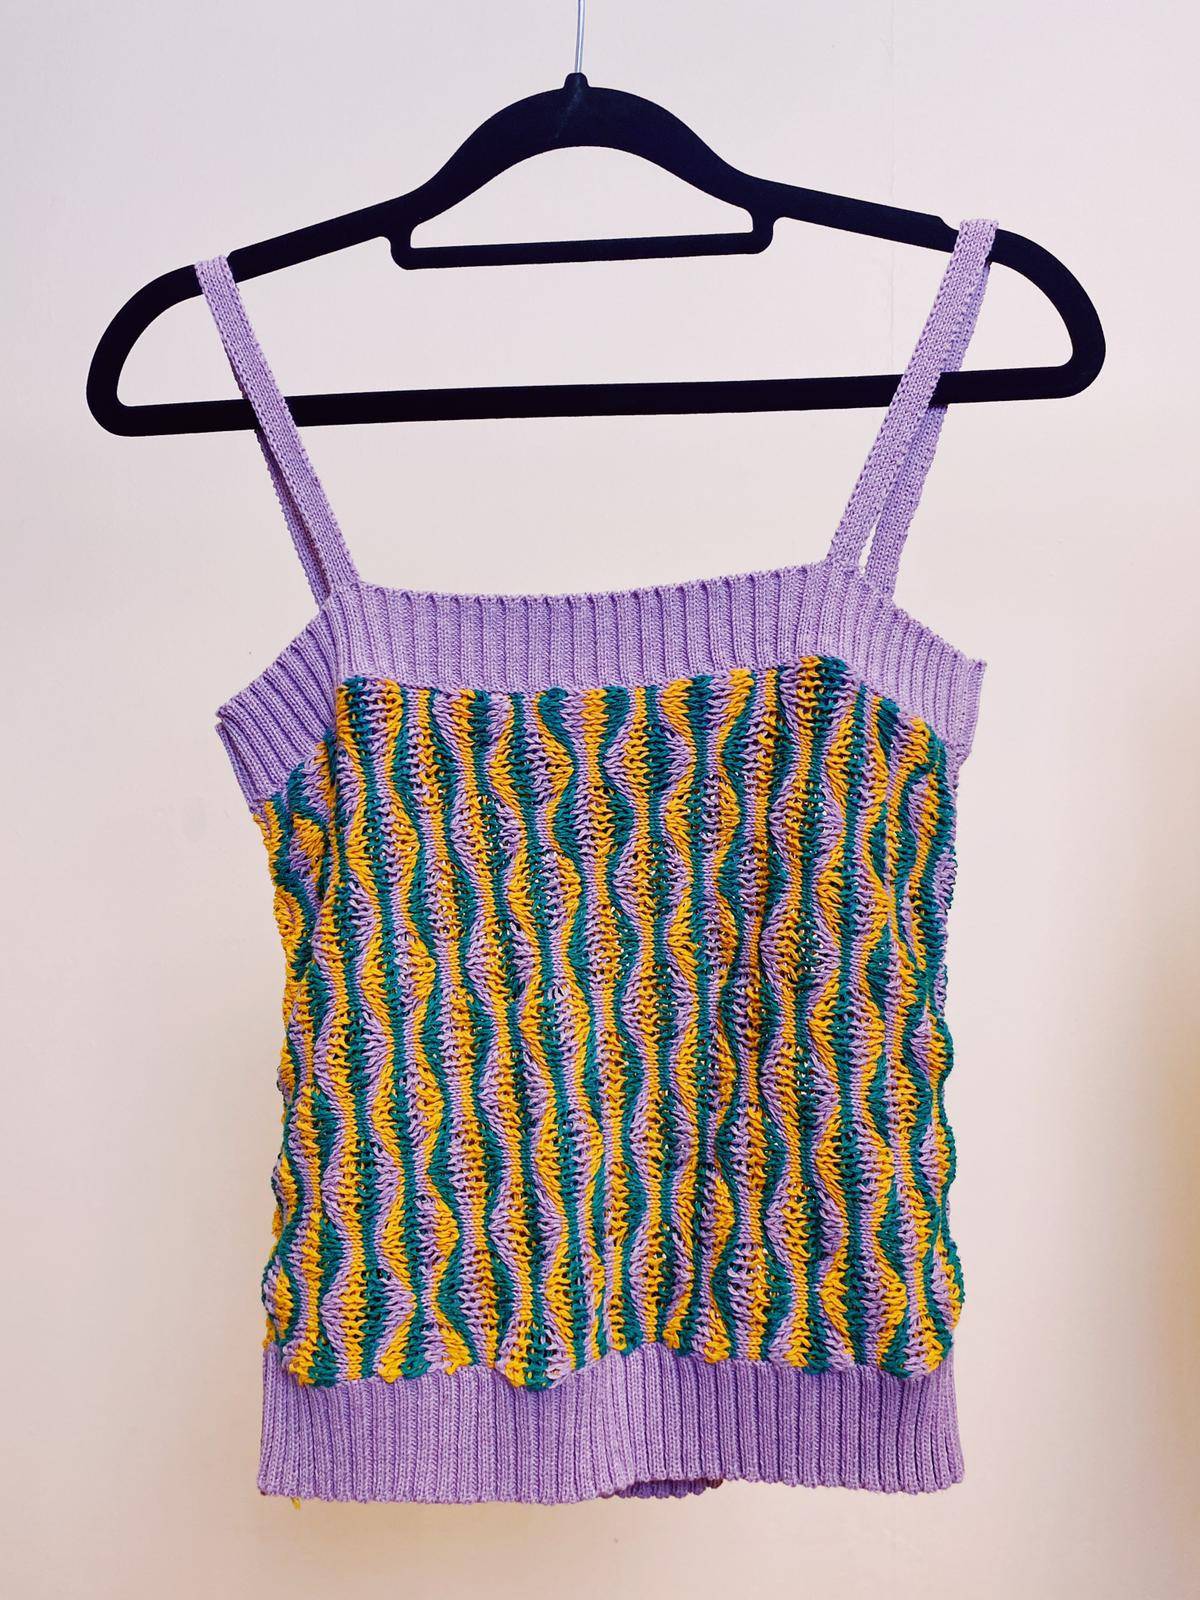 The Sophia Knitted Cropped Camisole Studio Courtenay